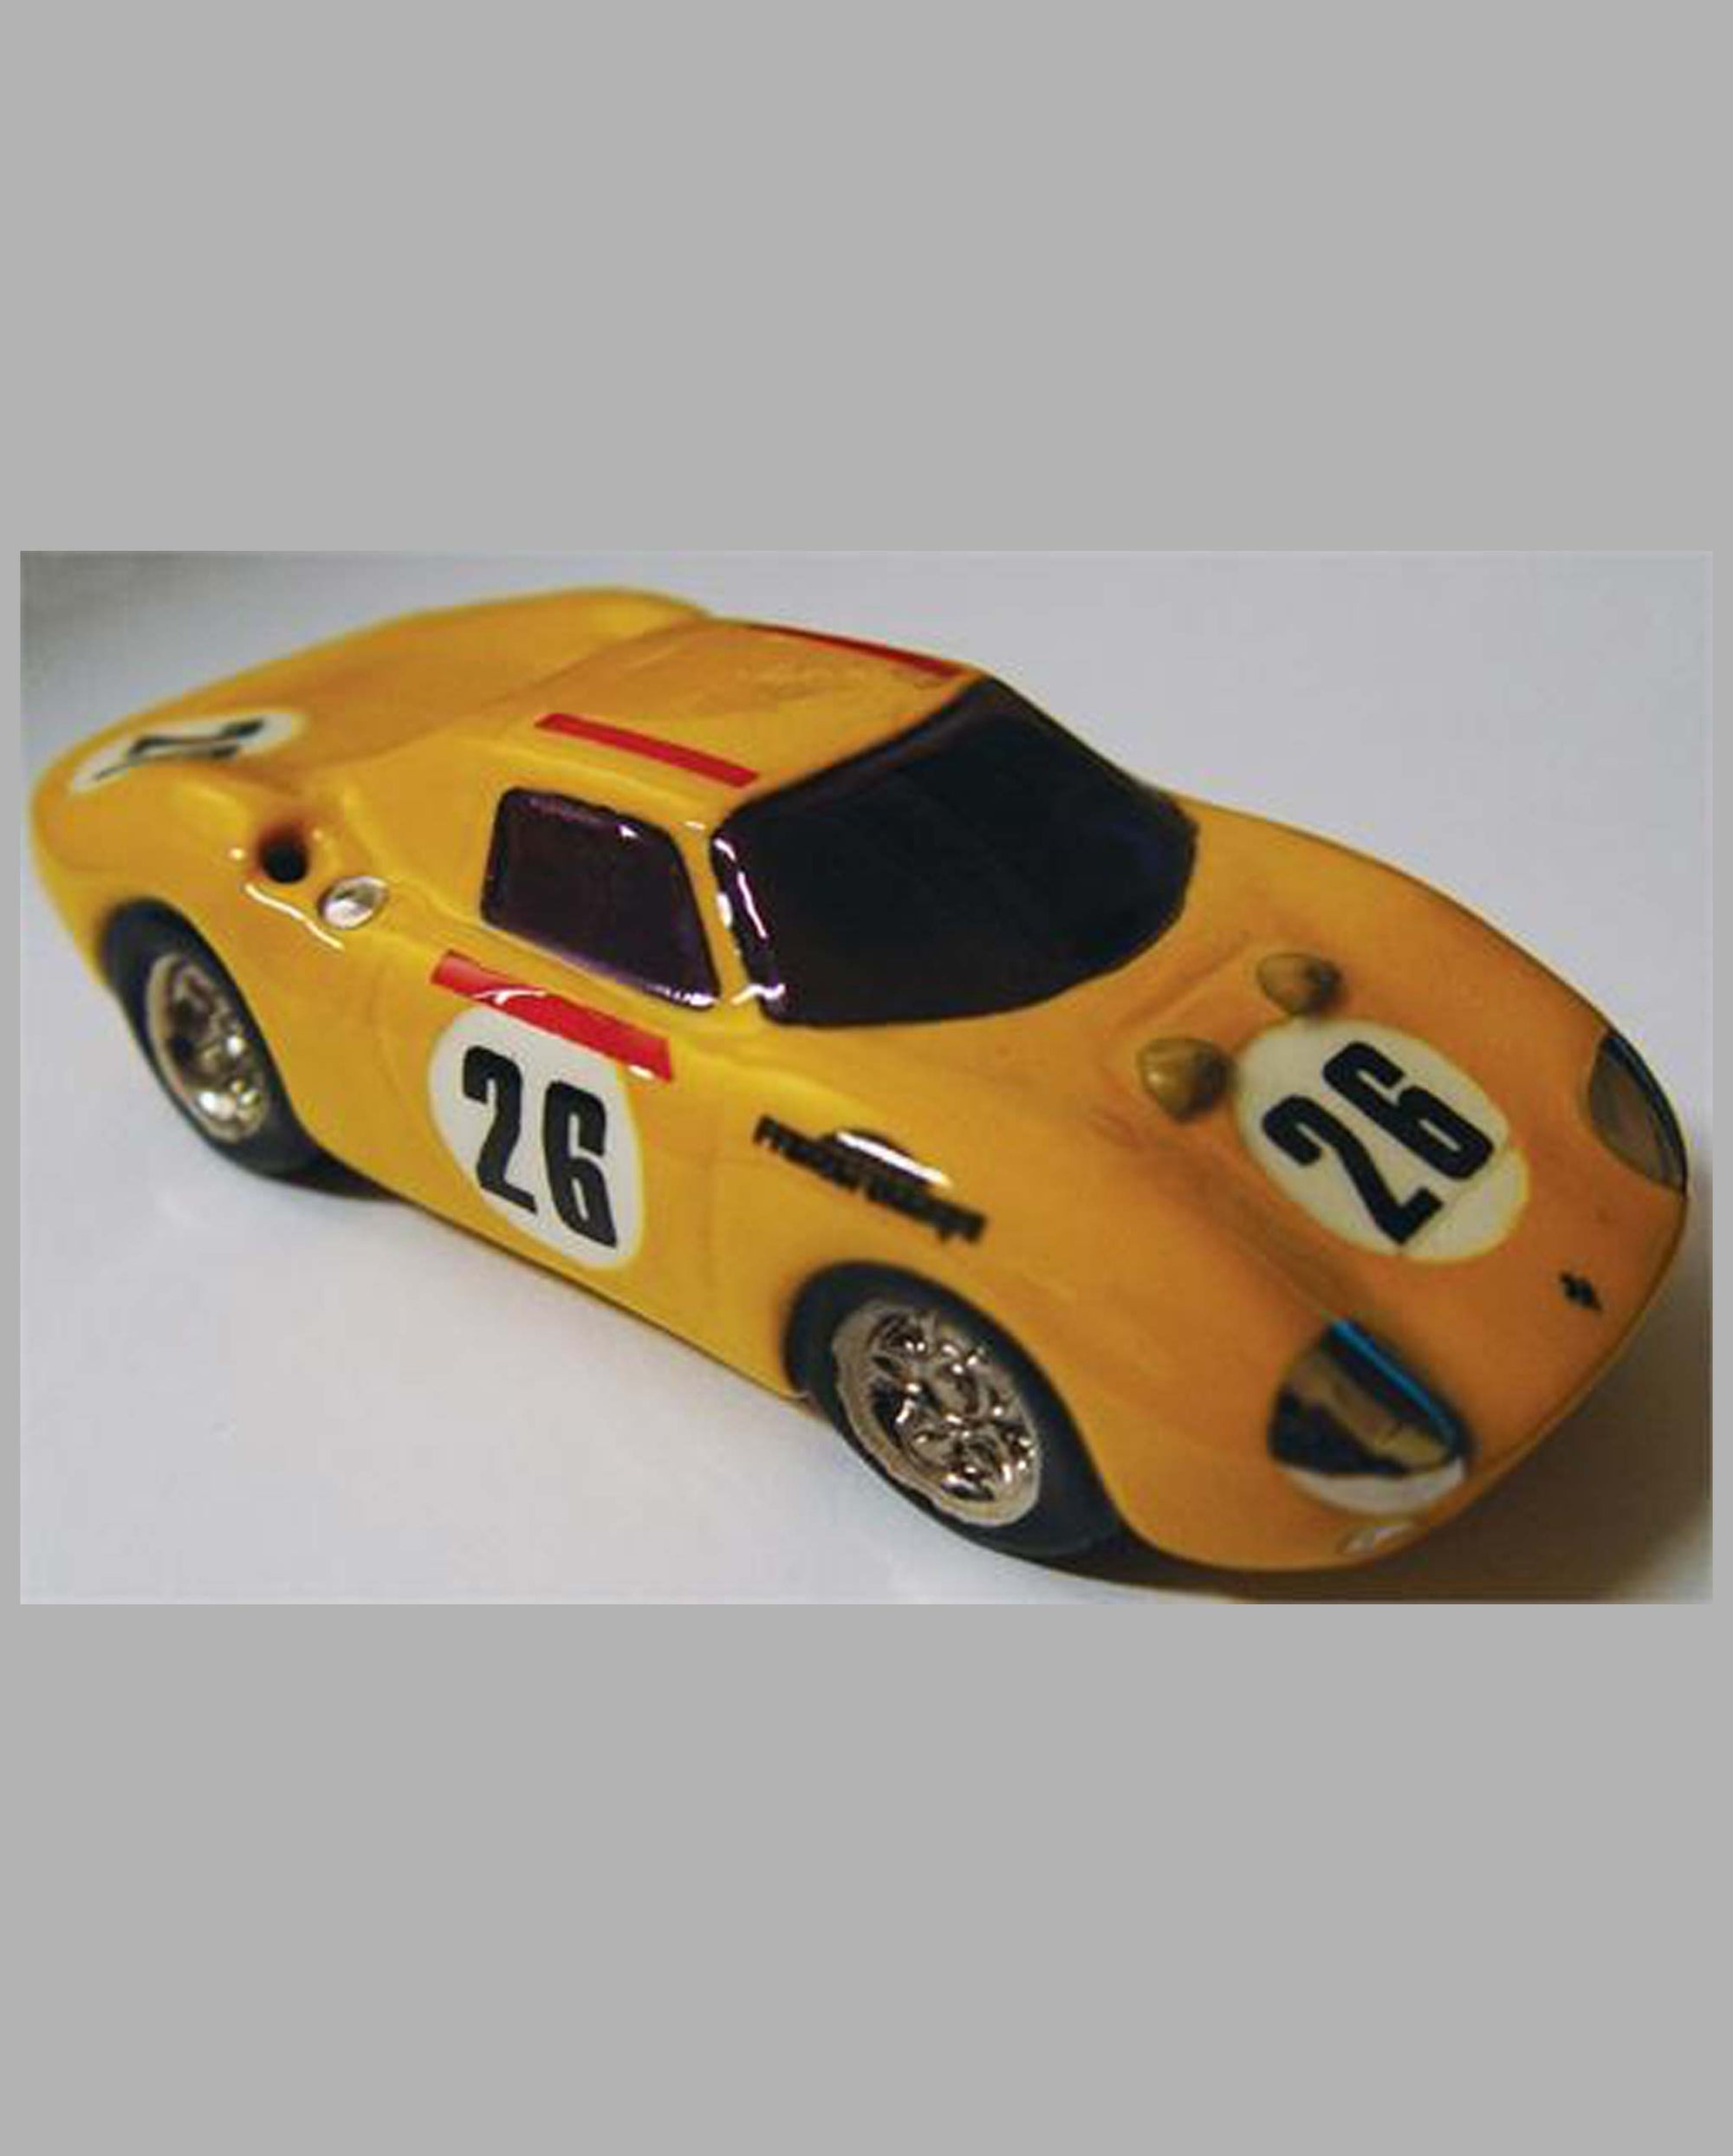 Ferrari 250 LM Ecurie Francorchamps ceramic car by Scott Schleh (USA)